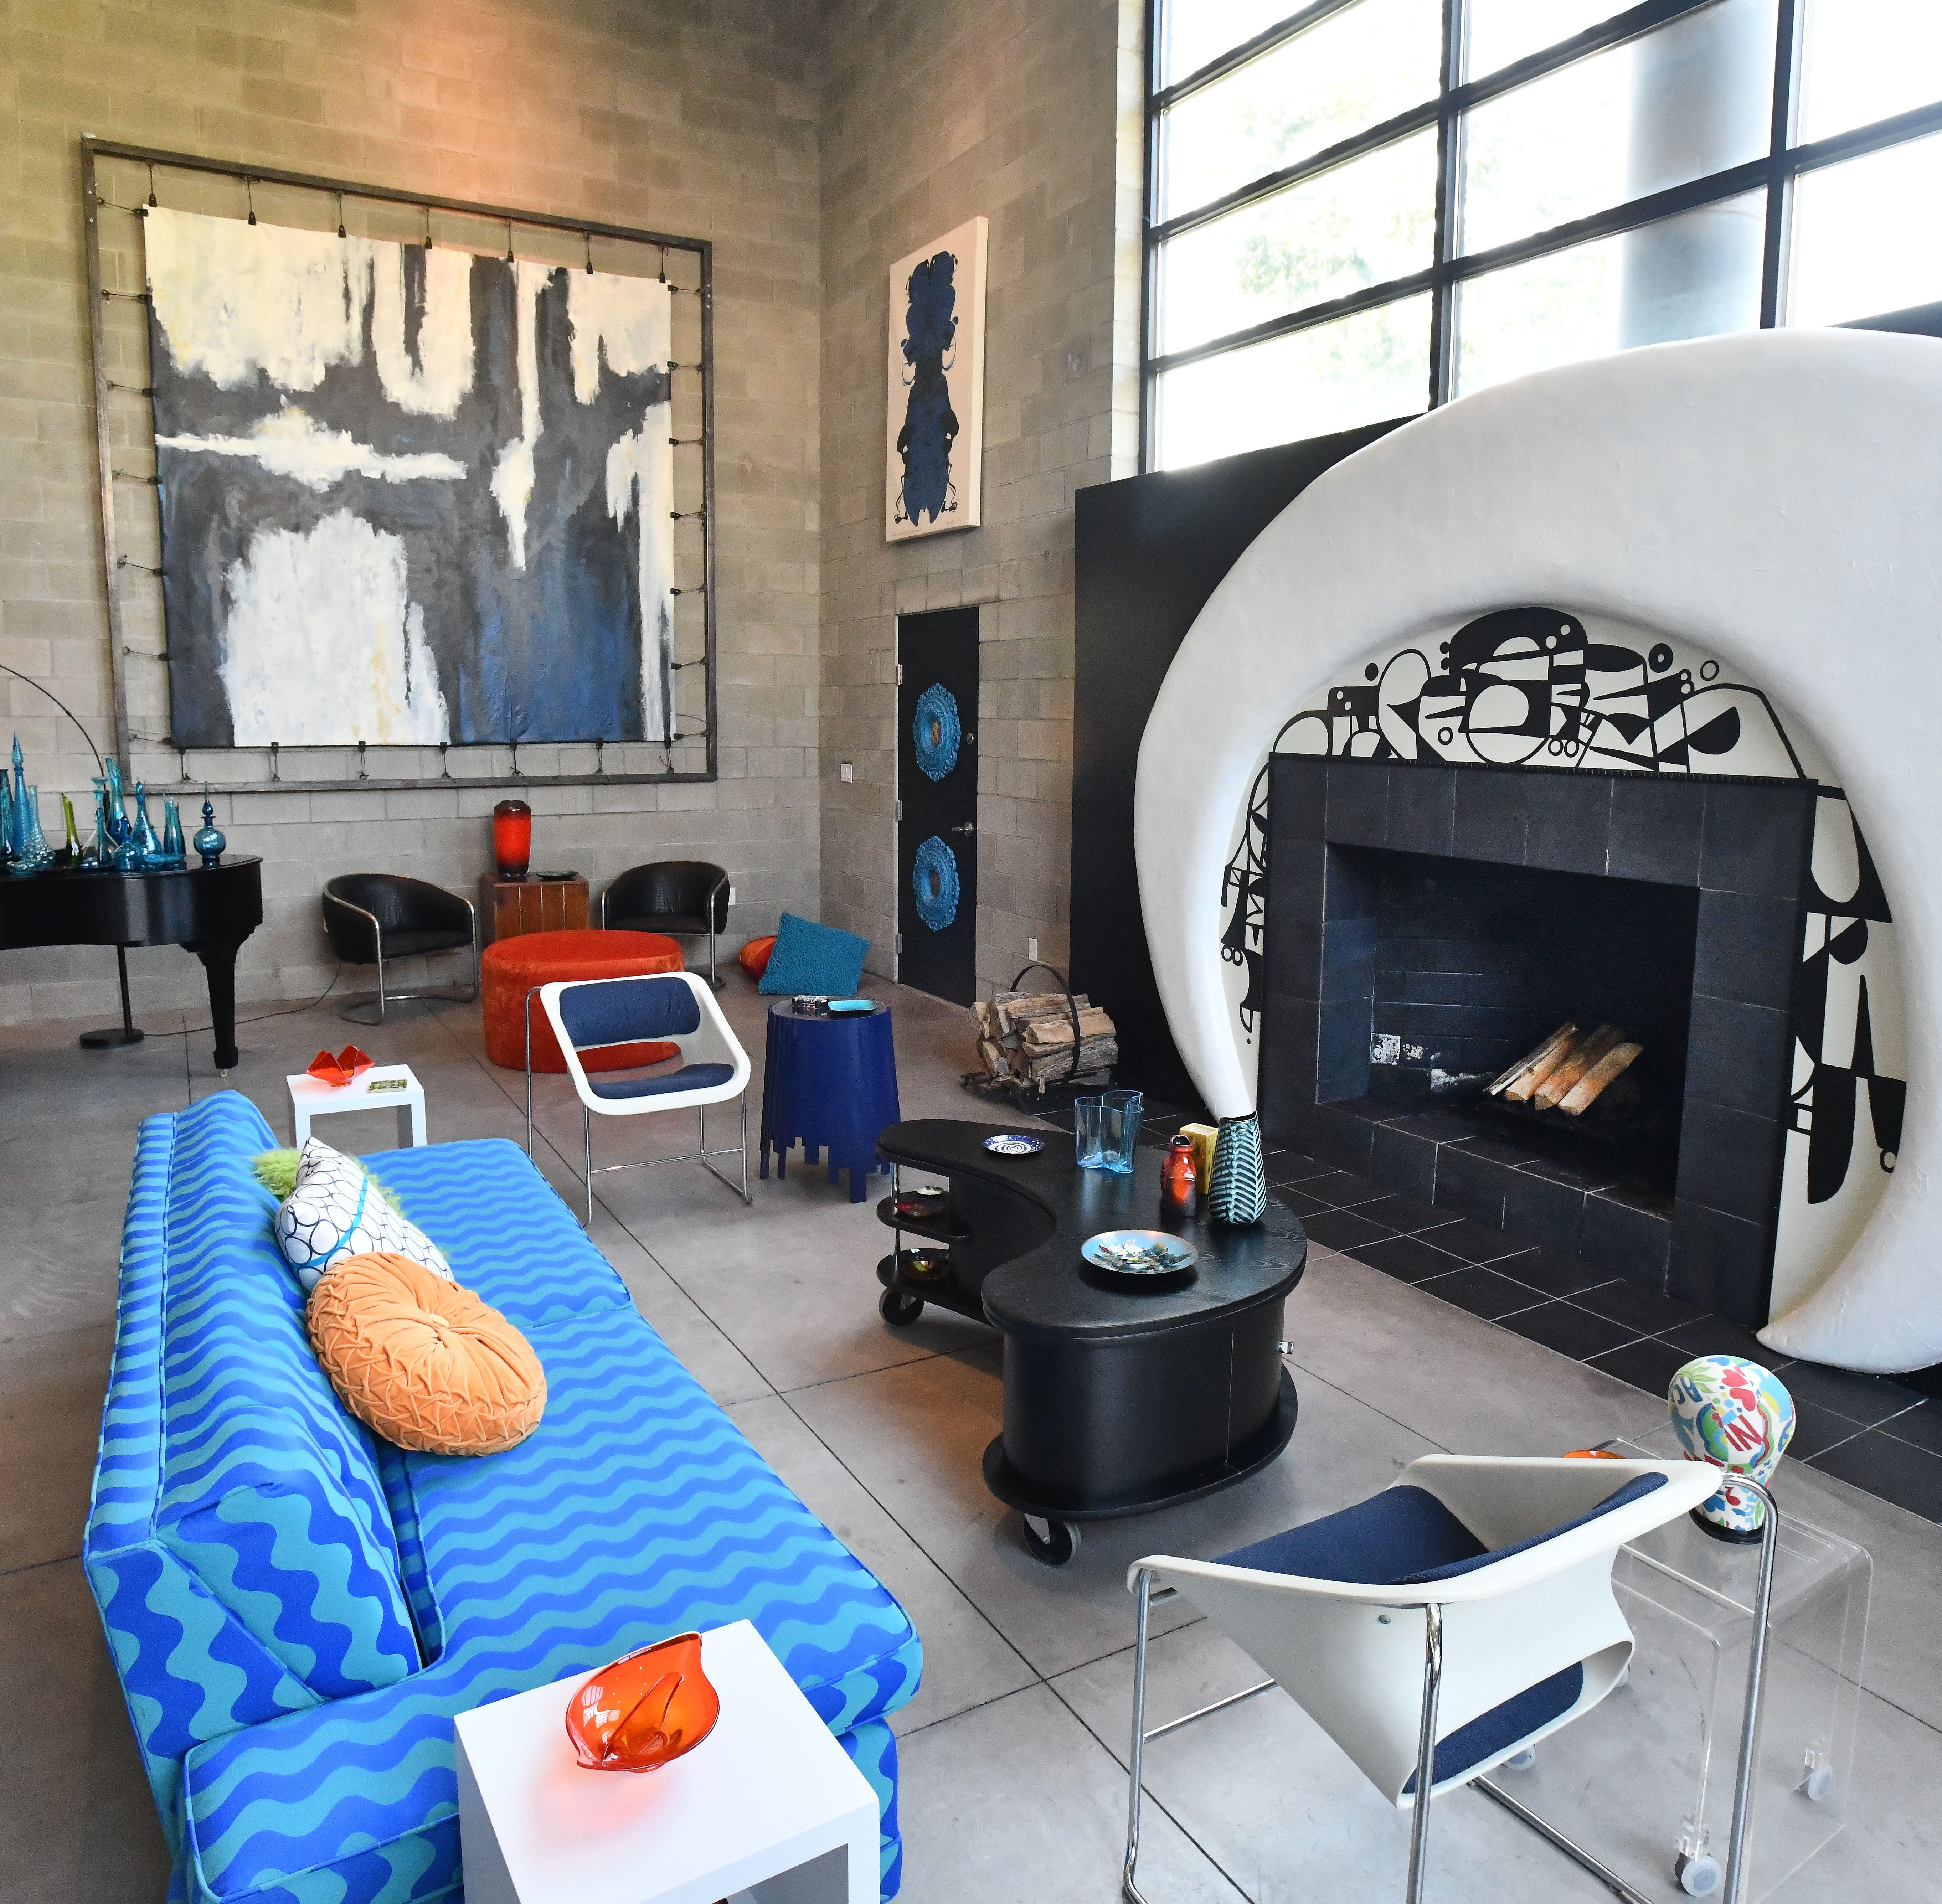 'Fortress of Fun' in Detroit lives up to its name as live-work space